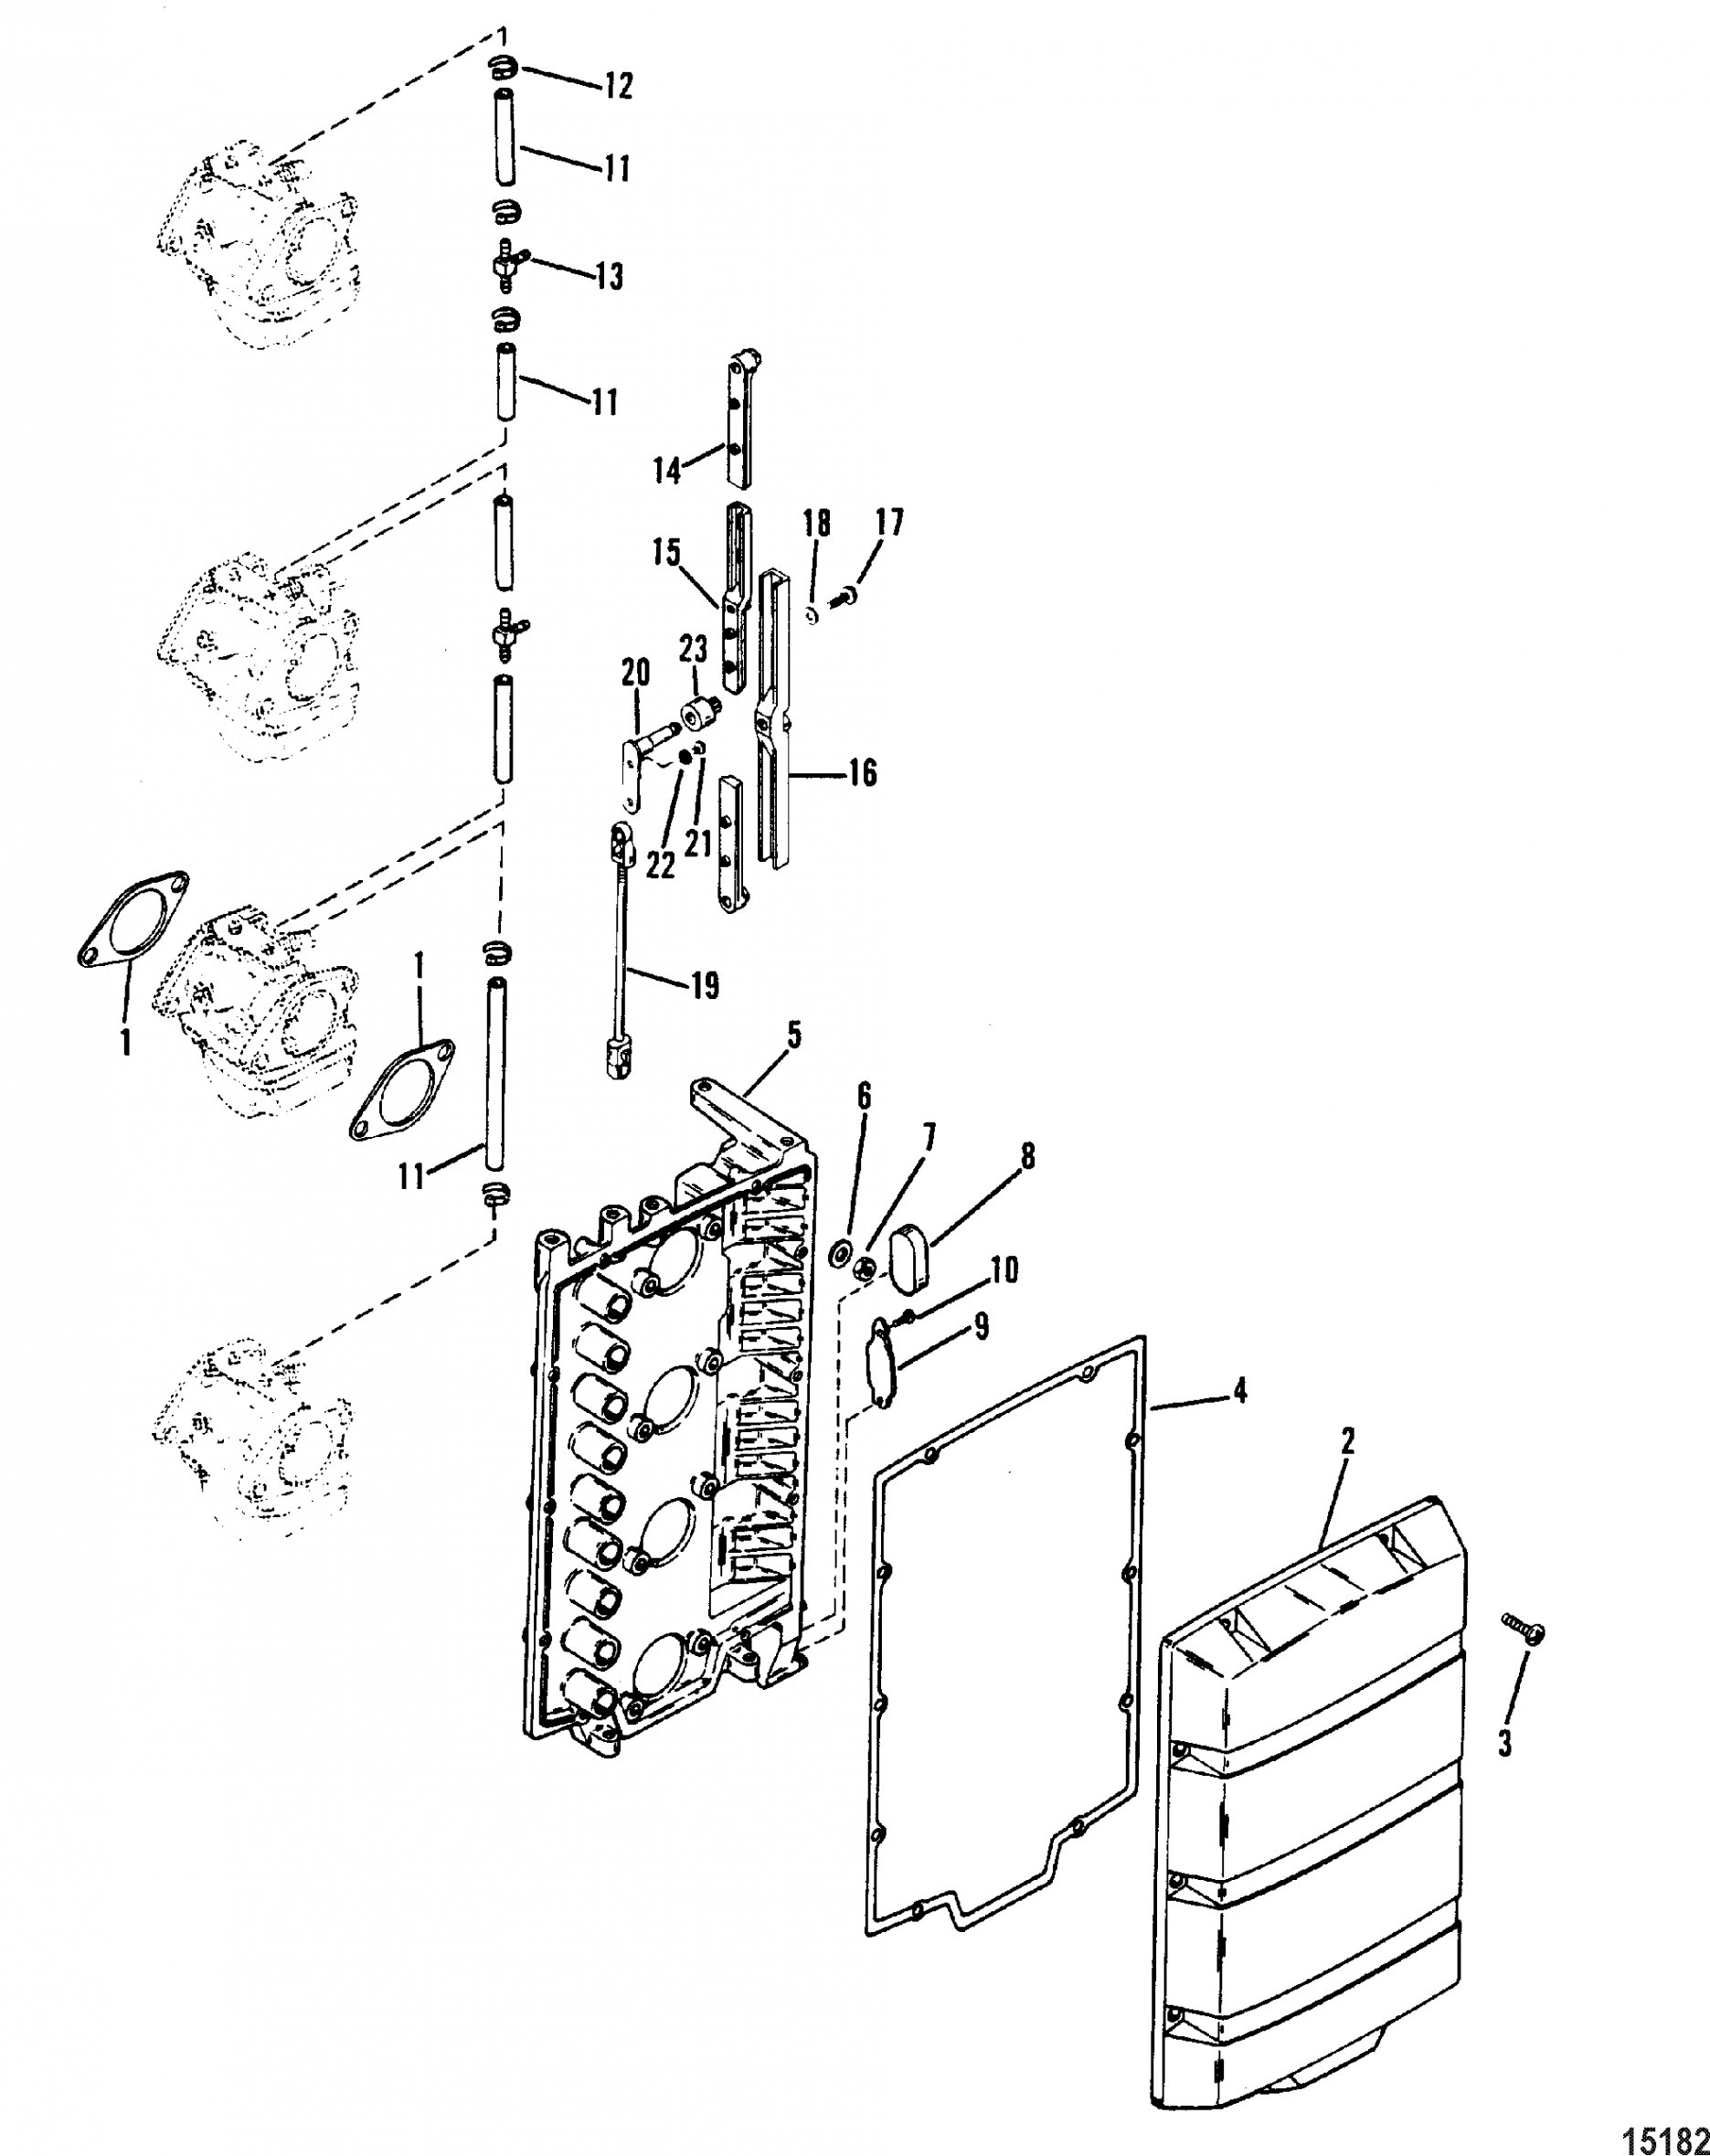 Mercury Outboard Engine Diagram Mercury Outboard Motor Parts Diagram – Mercury Mercury 115 4 Cyl Of Mercury Outboard Engine Diagram